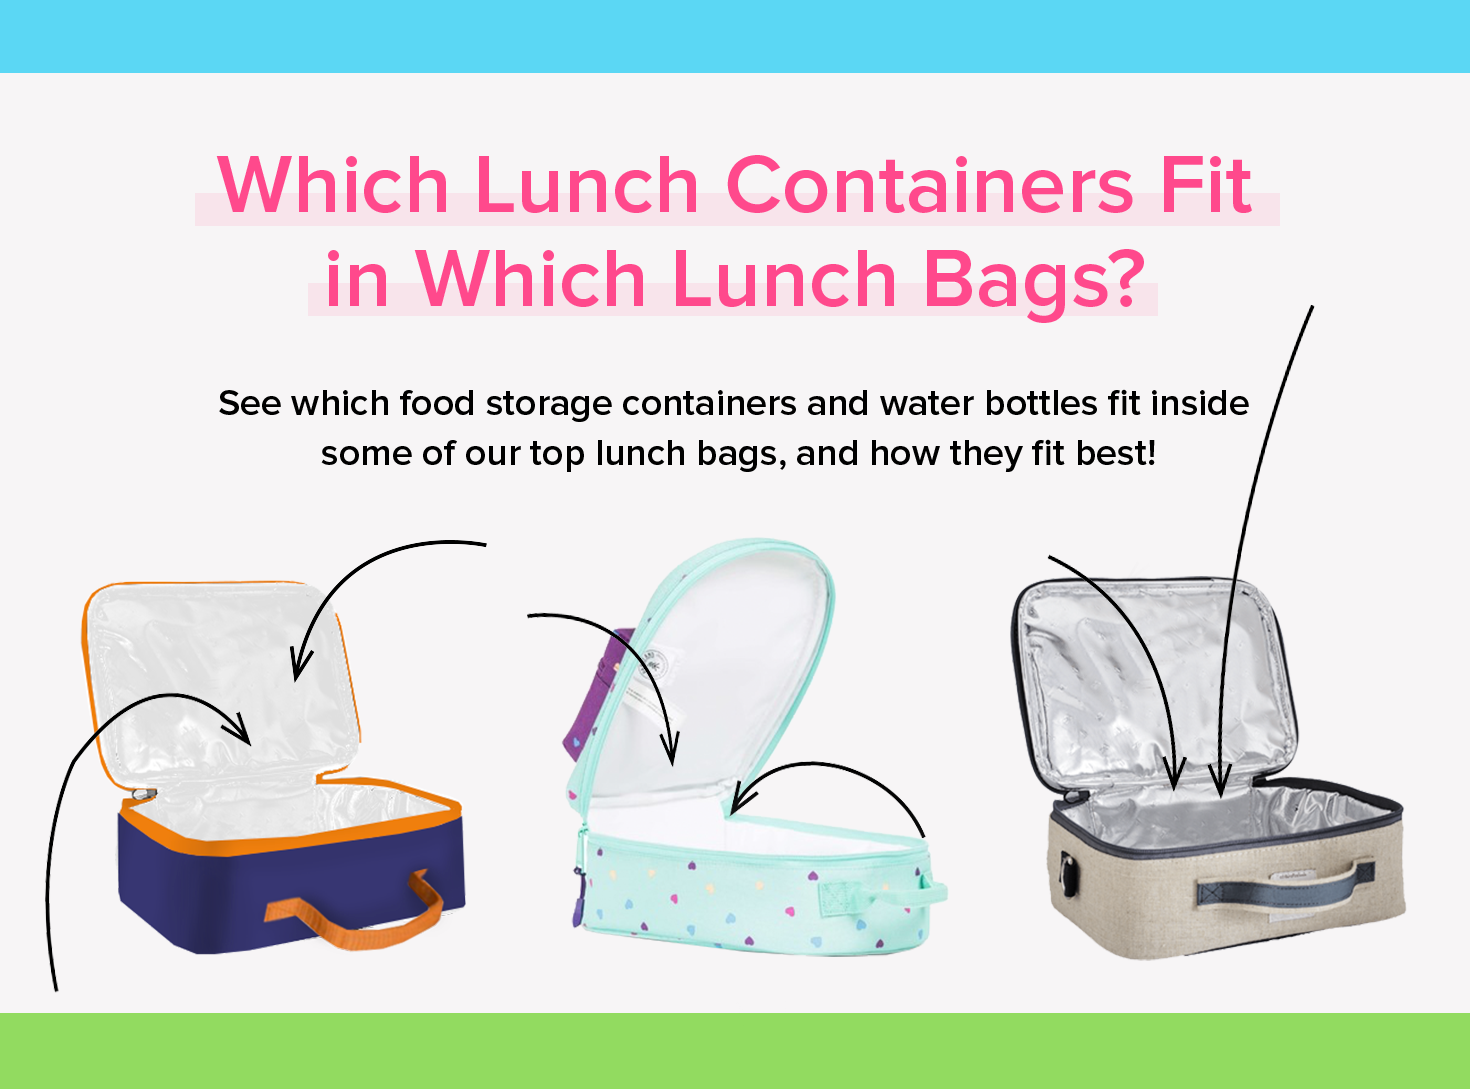 header - which lunch containers fit in which lunch bags